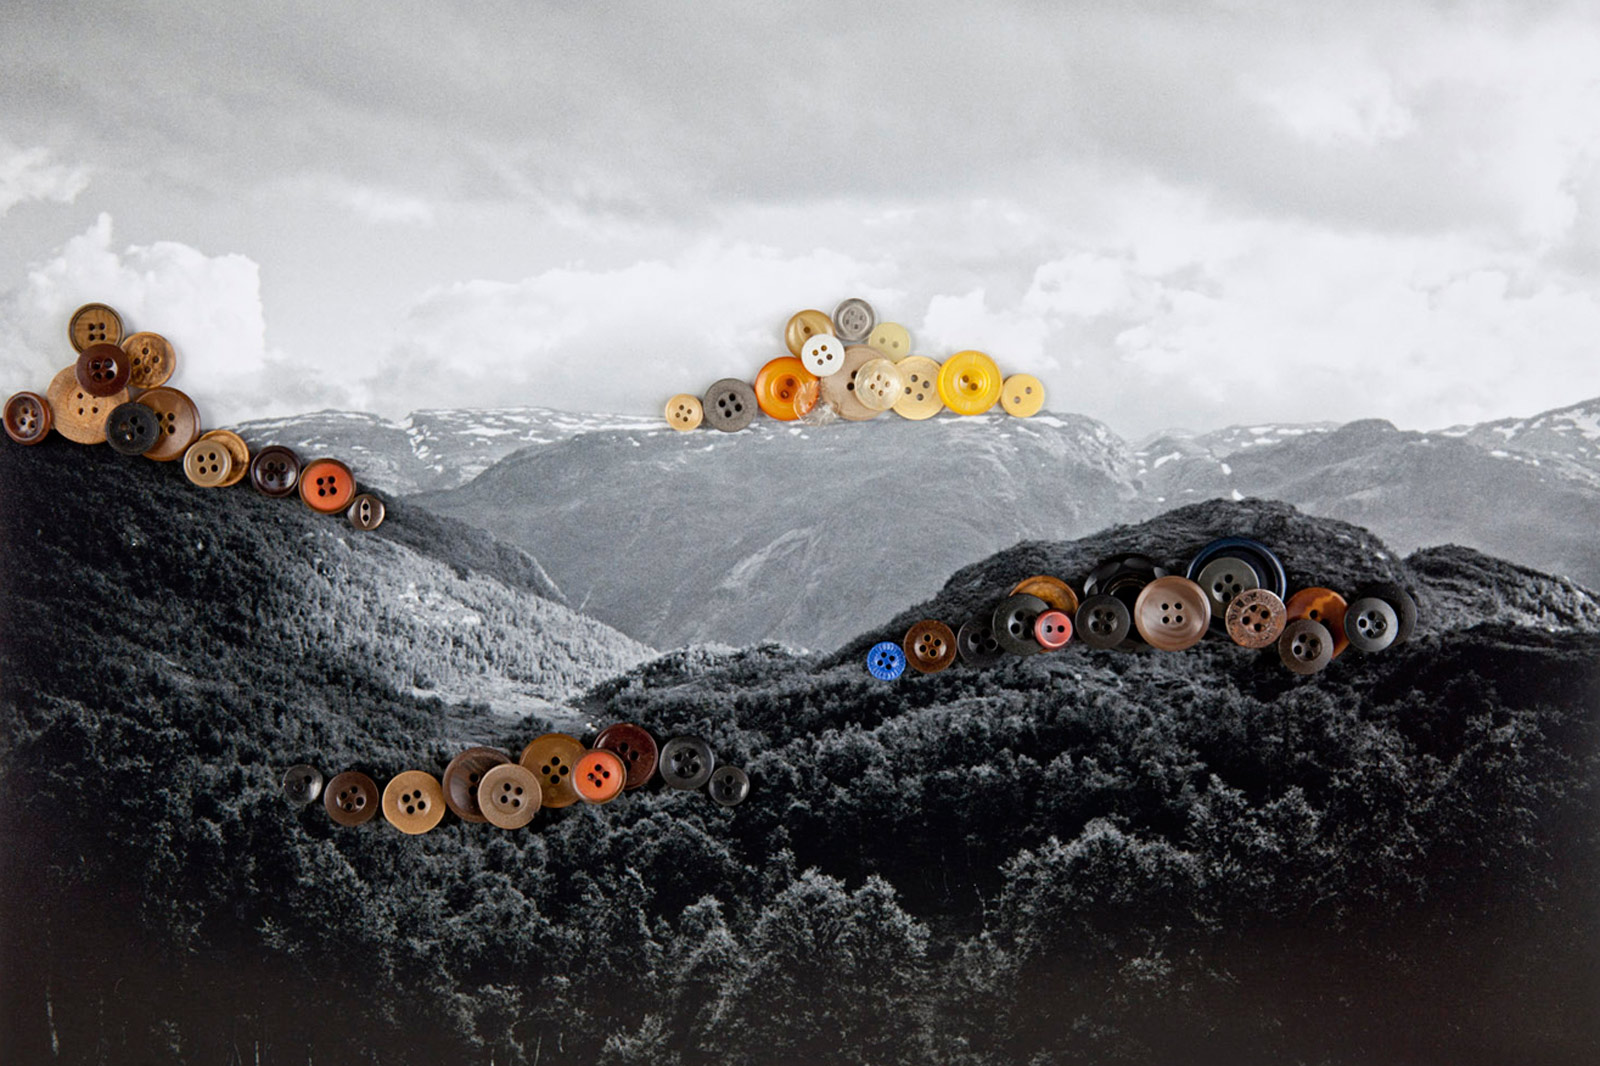 A photograph of a photograph of the mountains in Norway with colorful buttons laid on top.